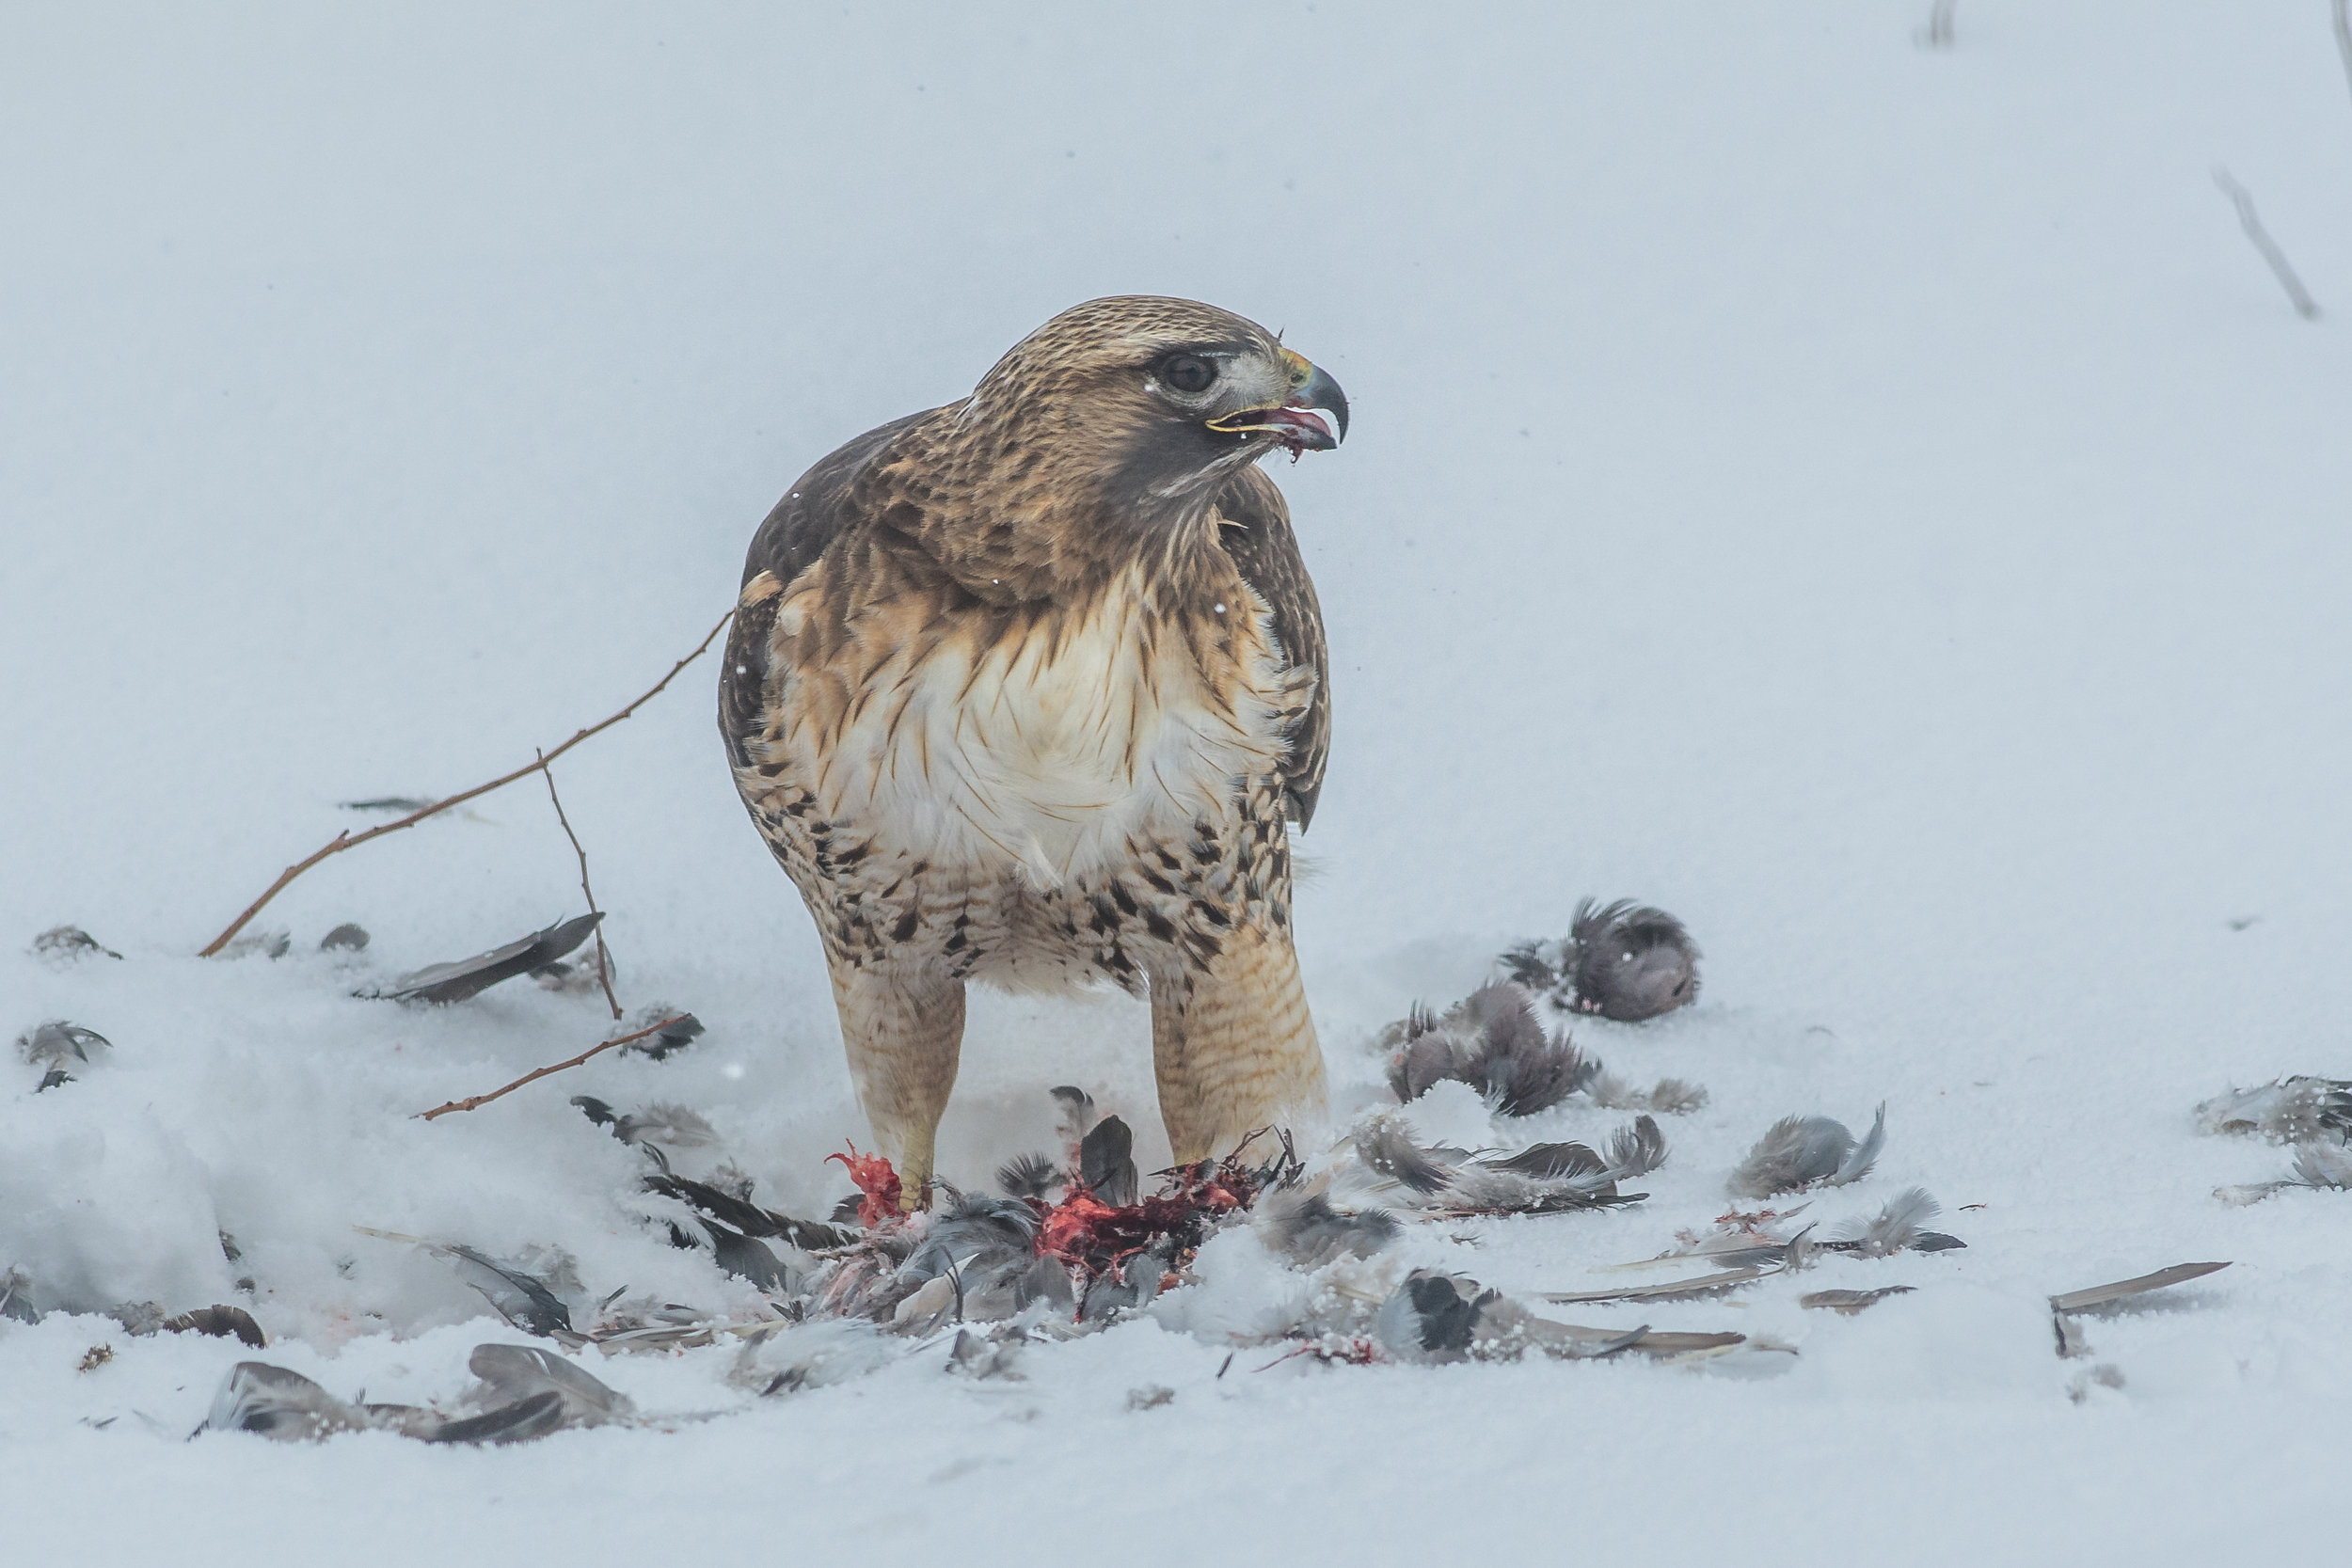 Featured Photo: Red-tailed Hawk (Buteo jamaicensis), WAS (NV)  EQ: D500, 300mm f/2.8 Taken: 2-21-2019 at 12:47  Settings: 450mm (35mm eqv), 1/2000s, f/5.6, ISO180, 1/3EV Conditions: overcast